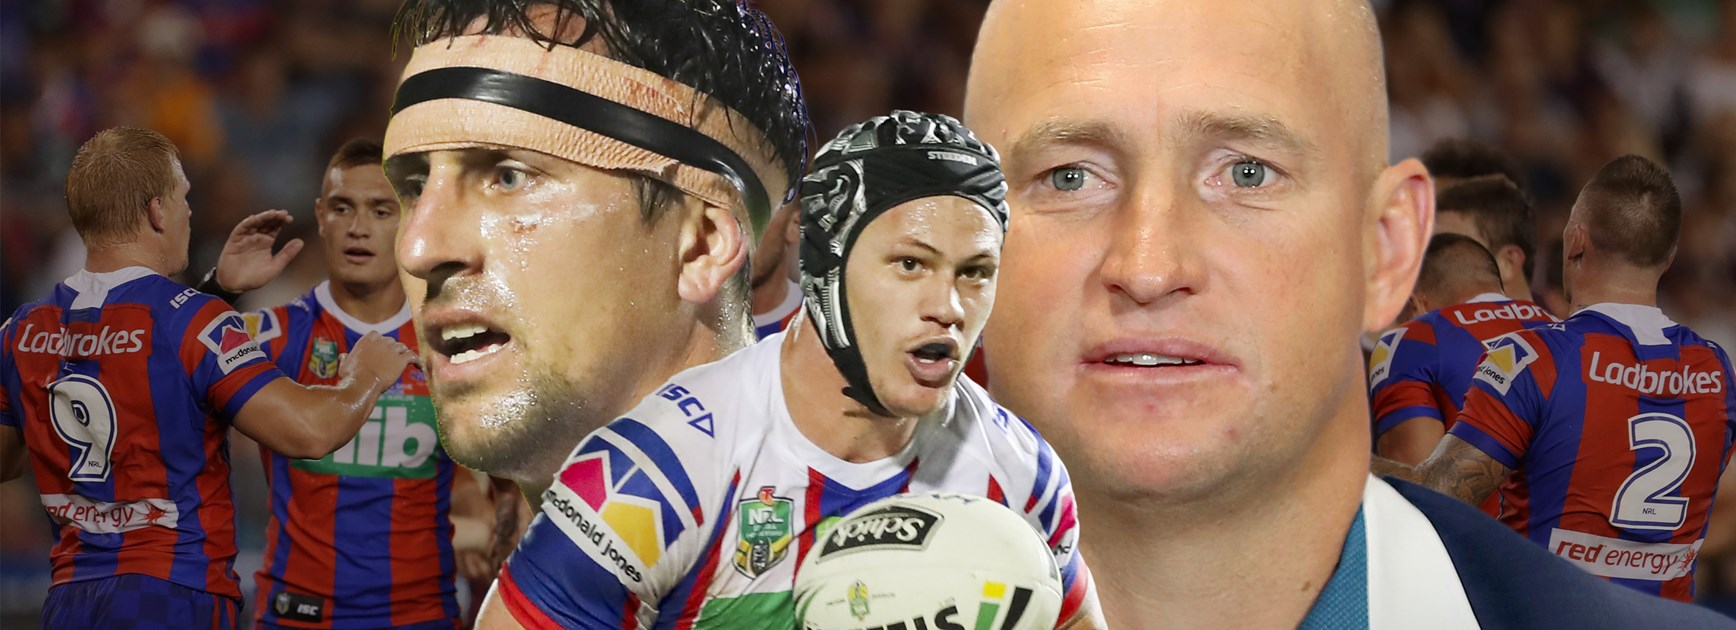 Newcastle Knights 2018 season review